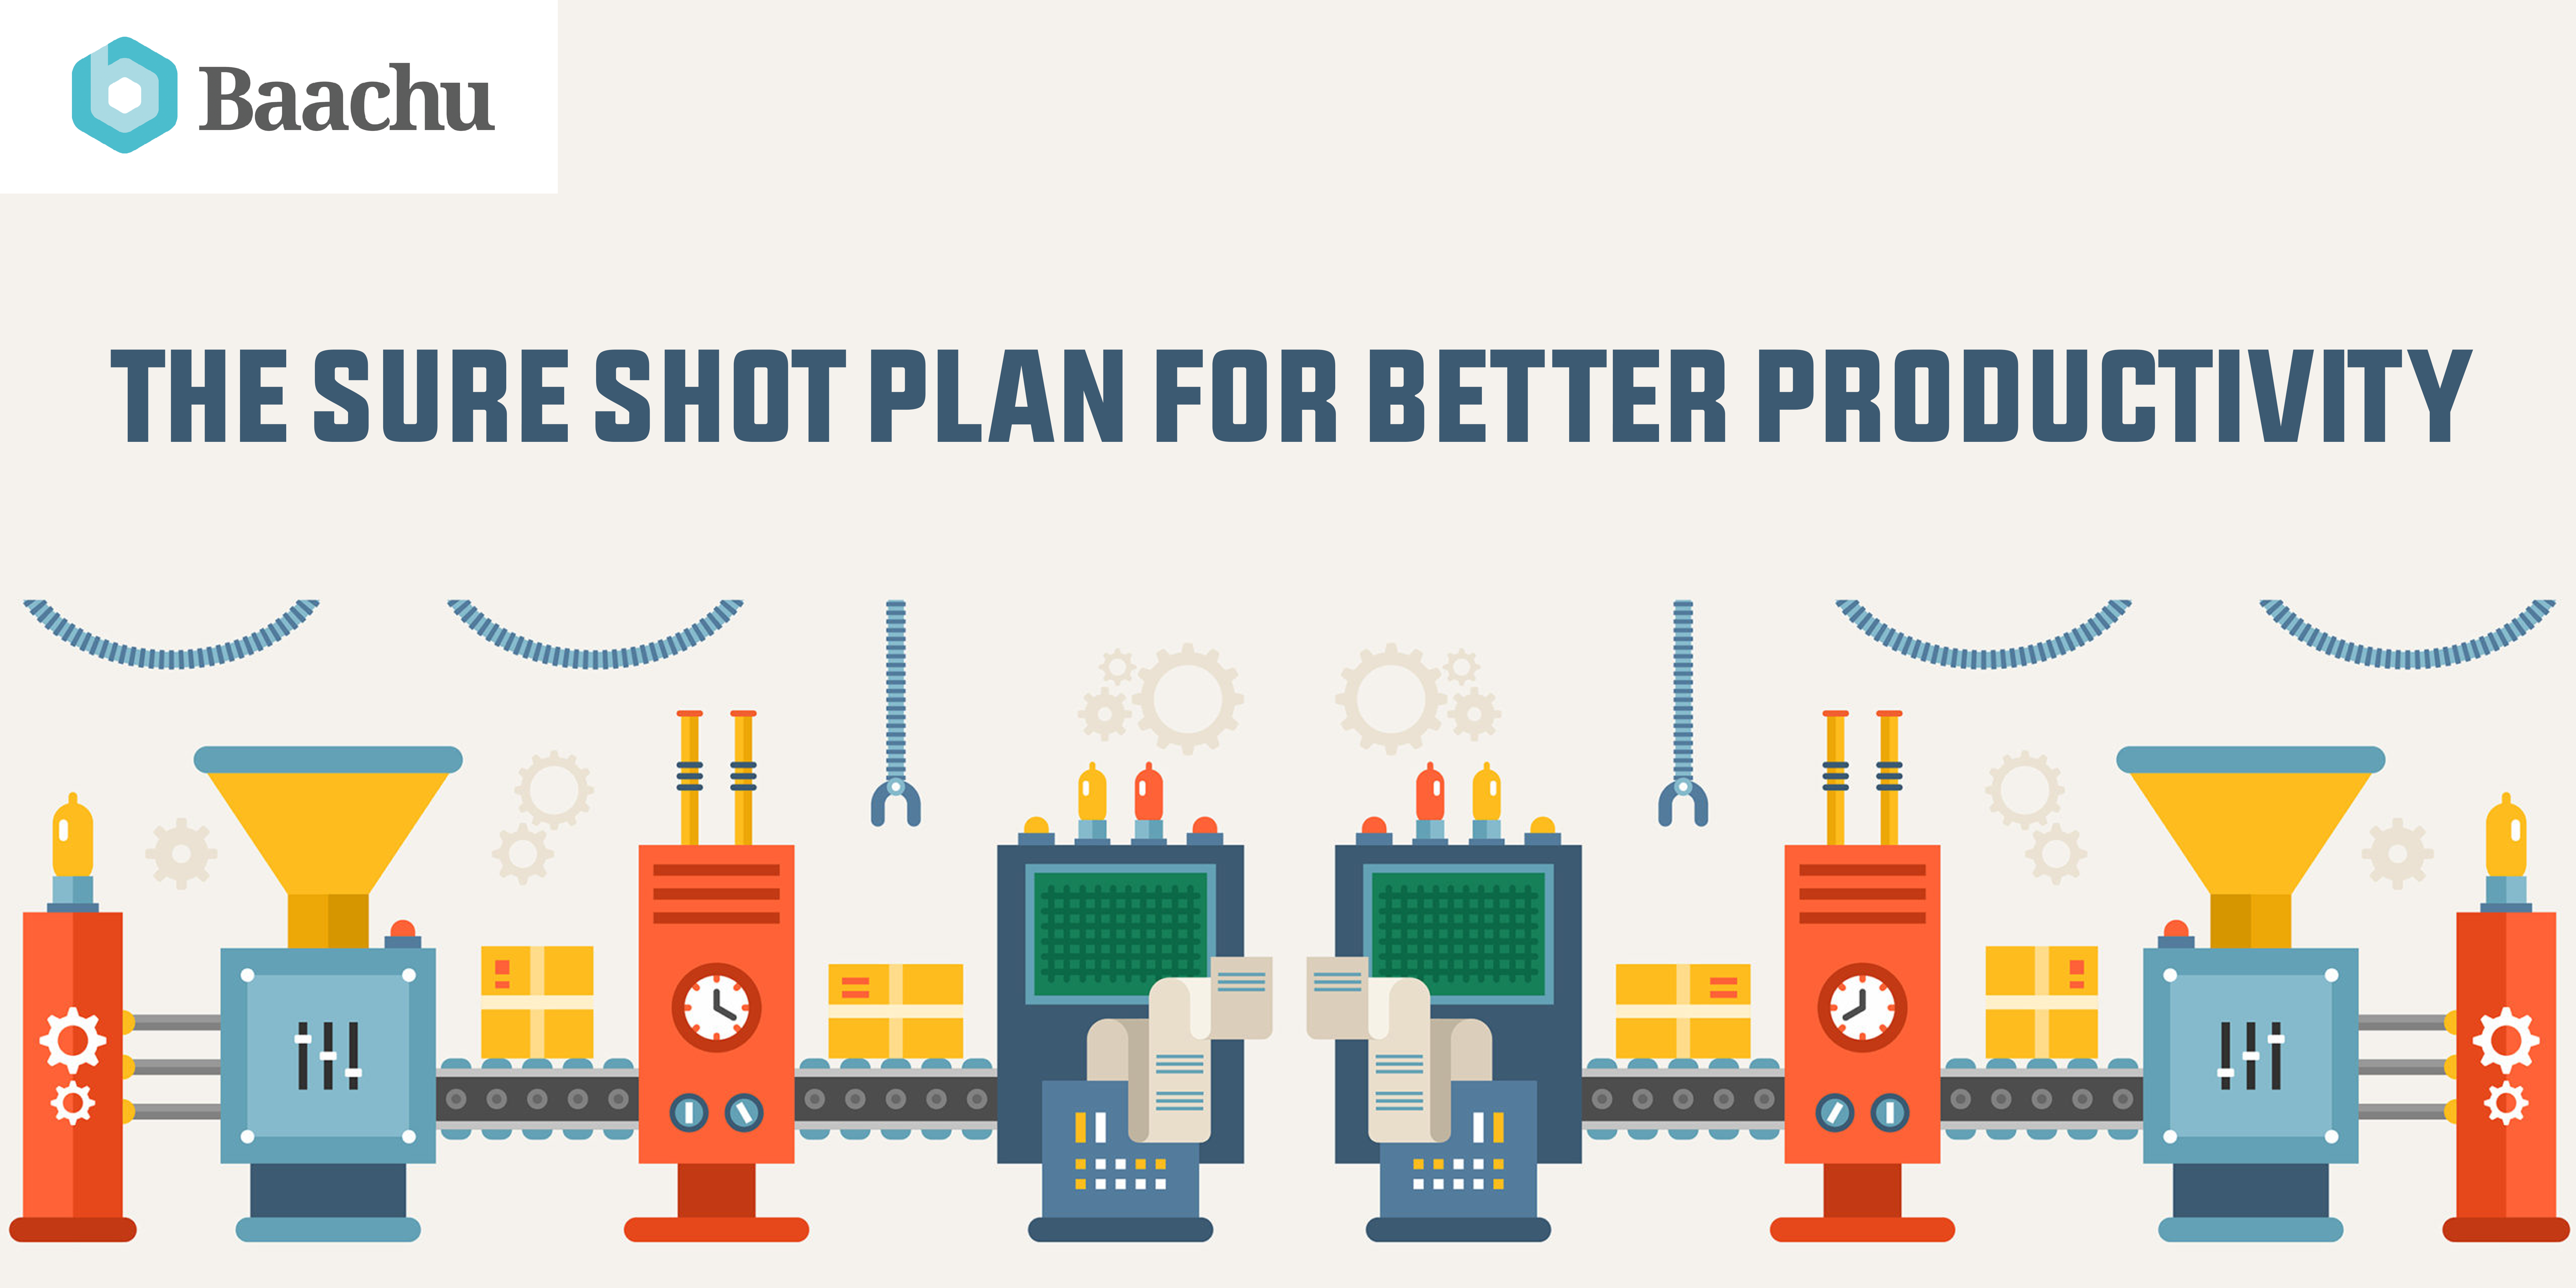 the sure shot plan for better productivity